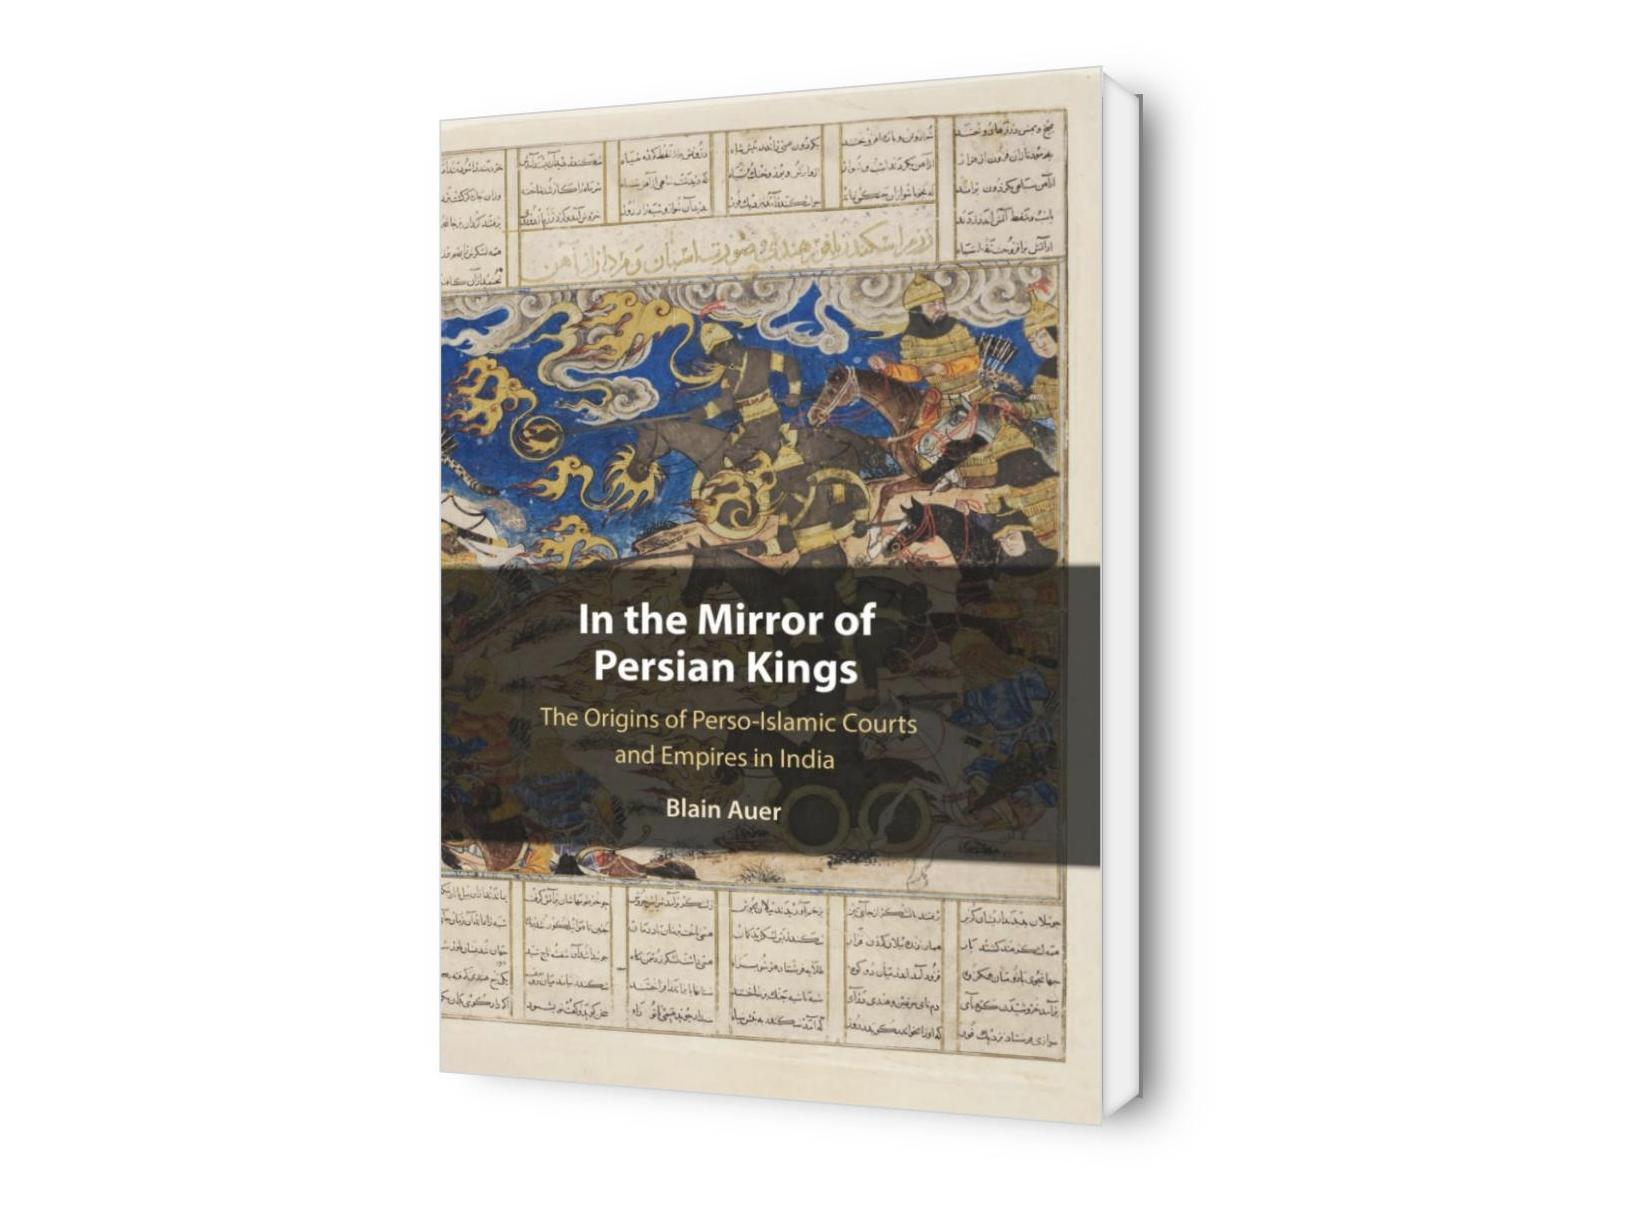 In the Mirror of Persian Kings: The Origins of Perso-Islamic Courts and Empires in India